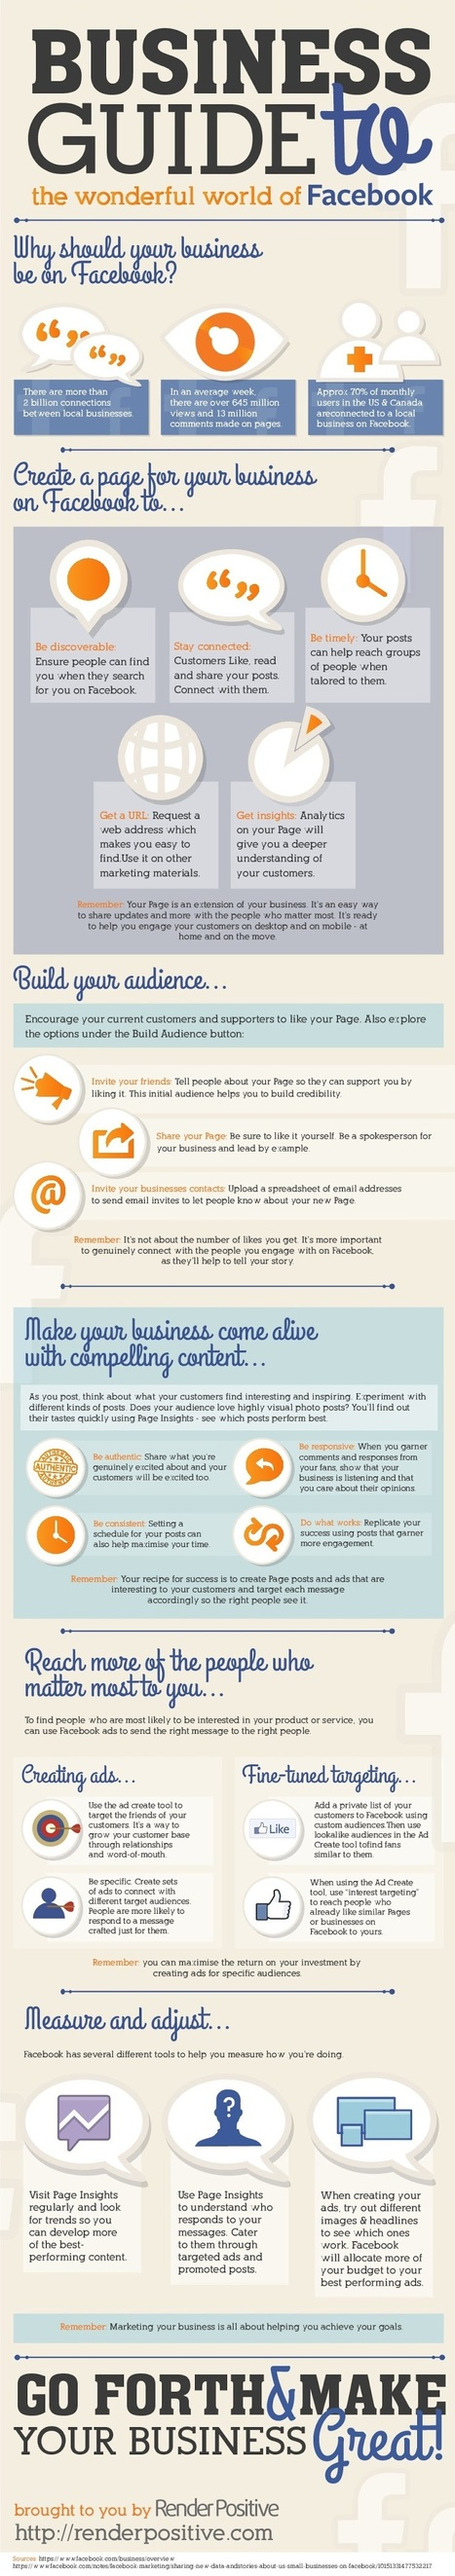 Business Guide To the Wonderful World of Facebook - infographic | Time to Learn | Scoop.it